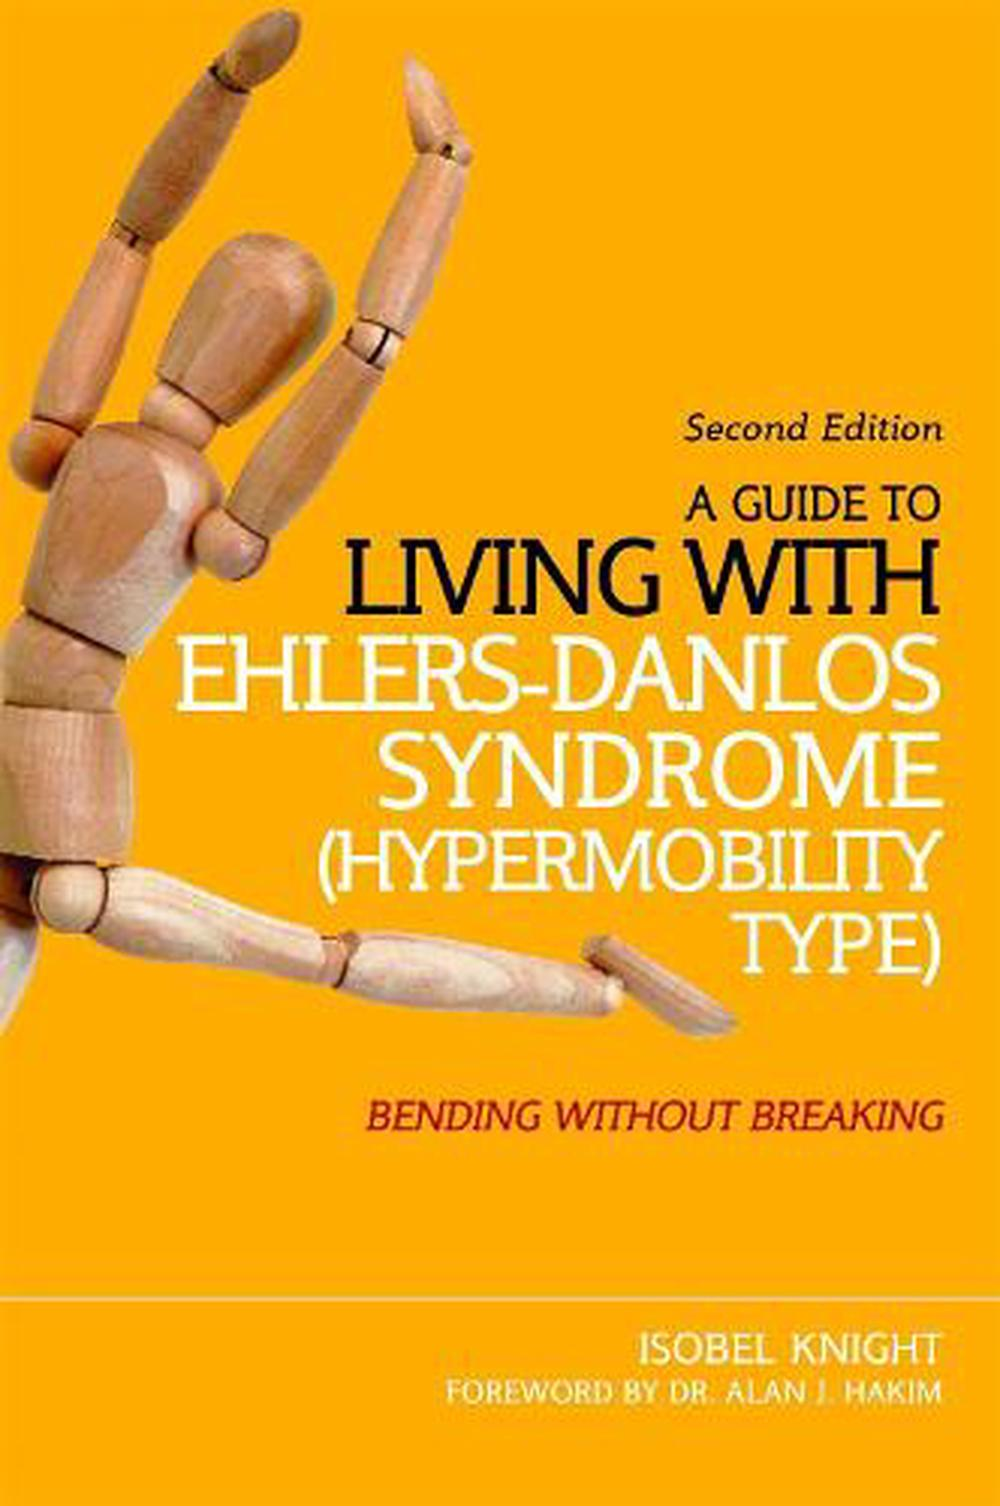 Guide to Living With Ehlers-danlos Syndrome (hypermobility Type)